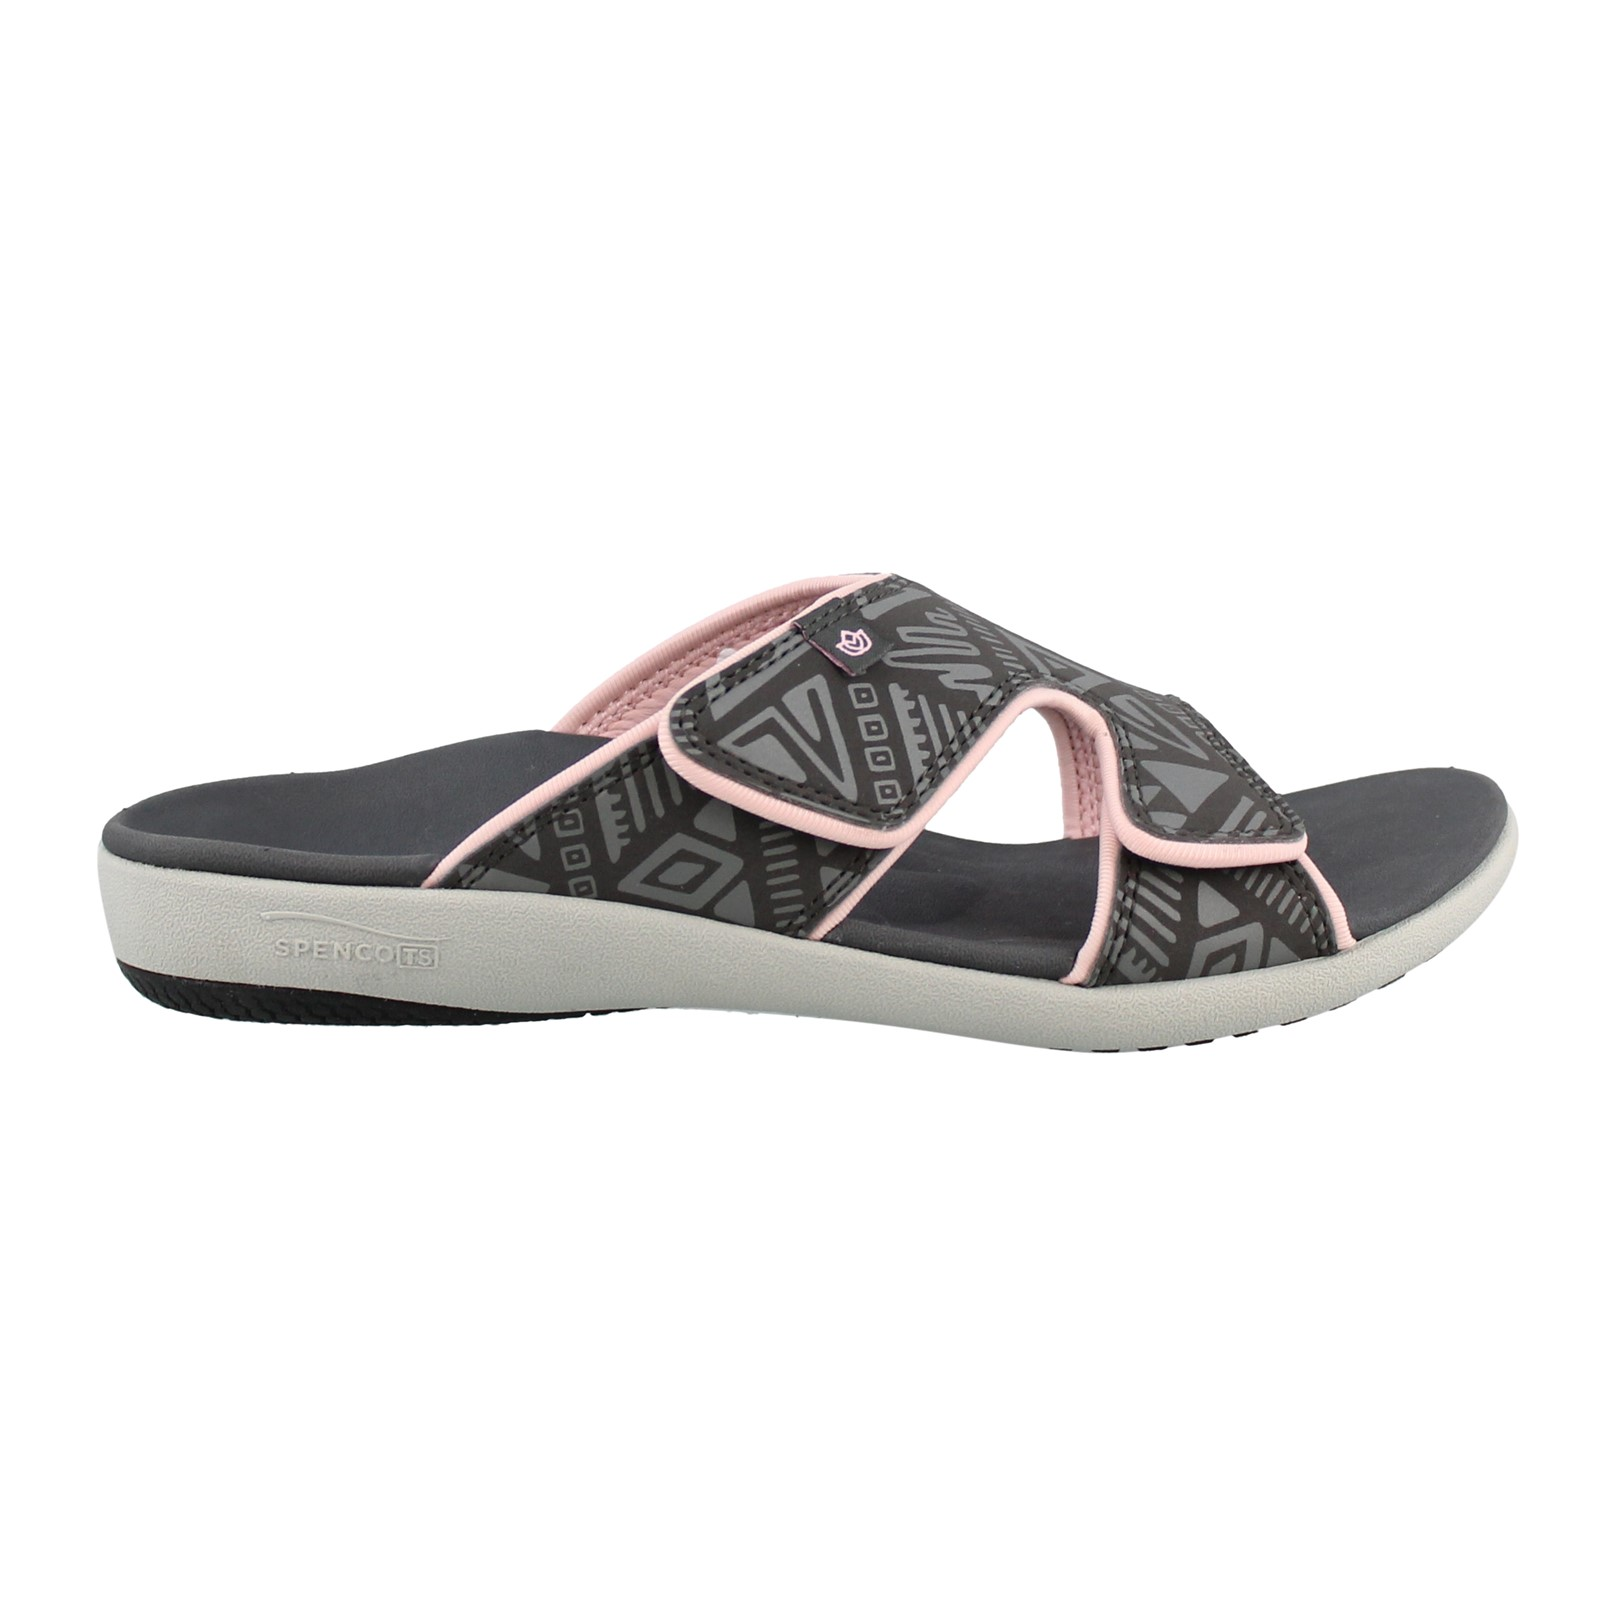 Women's Spenco, Tribal Slide Sandals